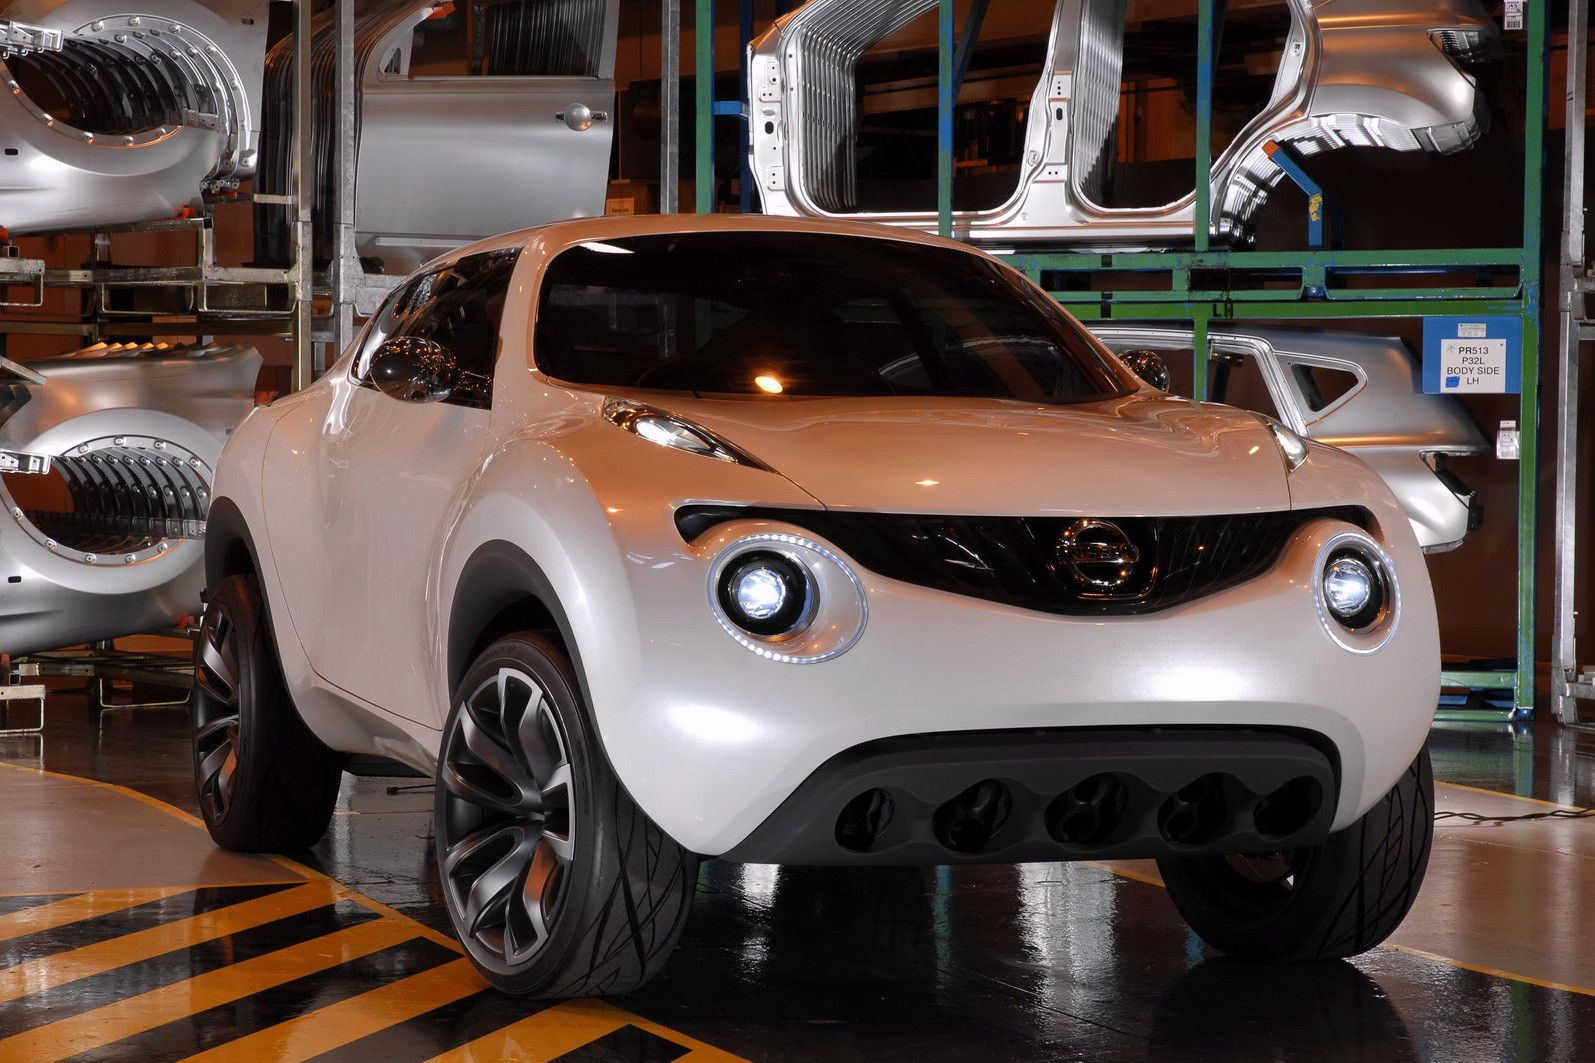 Superbe Nissan Juke, These Are So Cute!